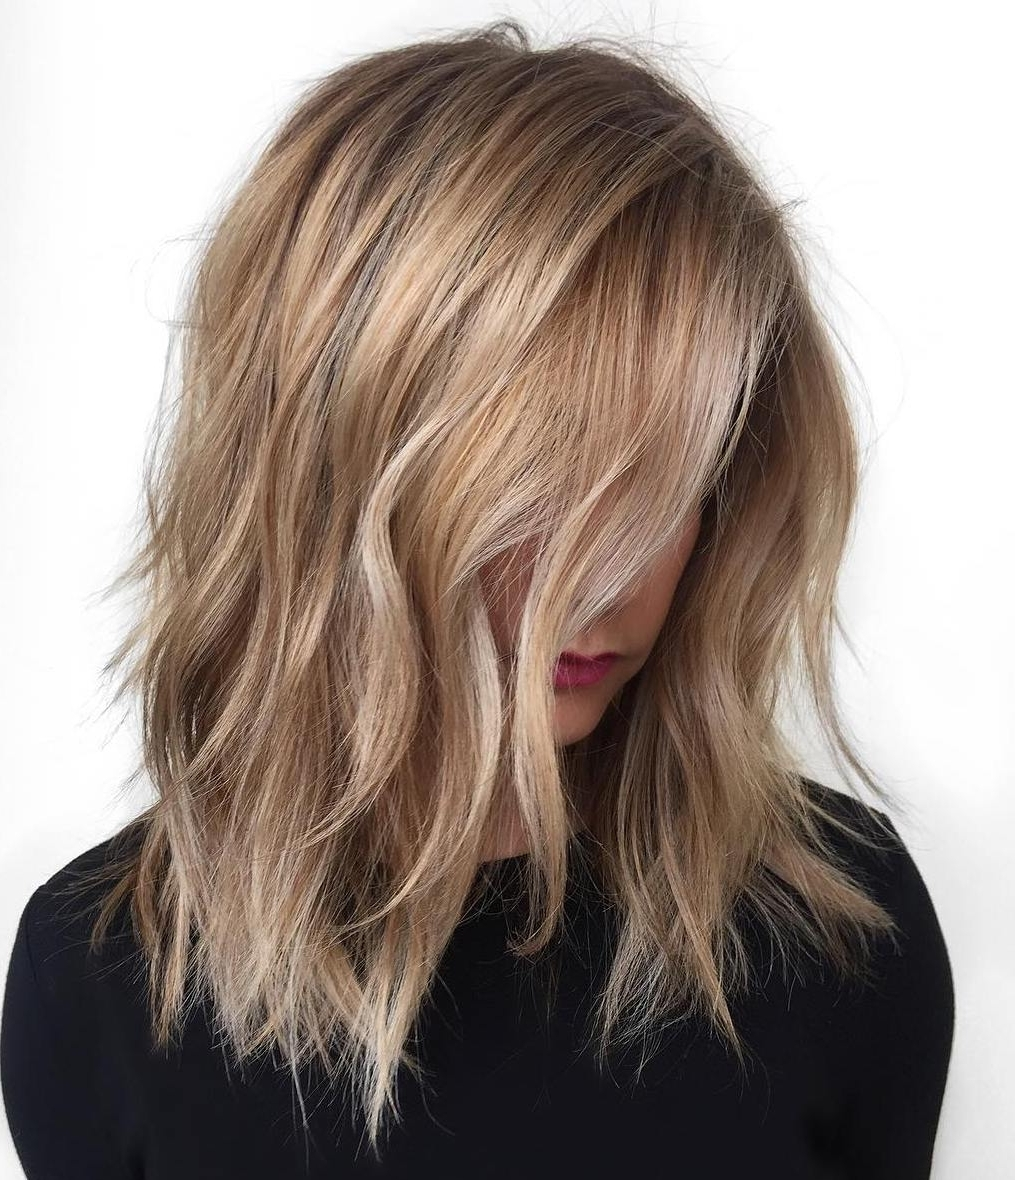 40 Styles With Medium Blonde Hair For Major Inspiration Within Well Known Creamy Blonde Waves With Bangs (View 1 of 20)